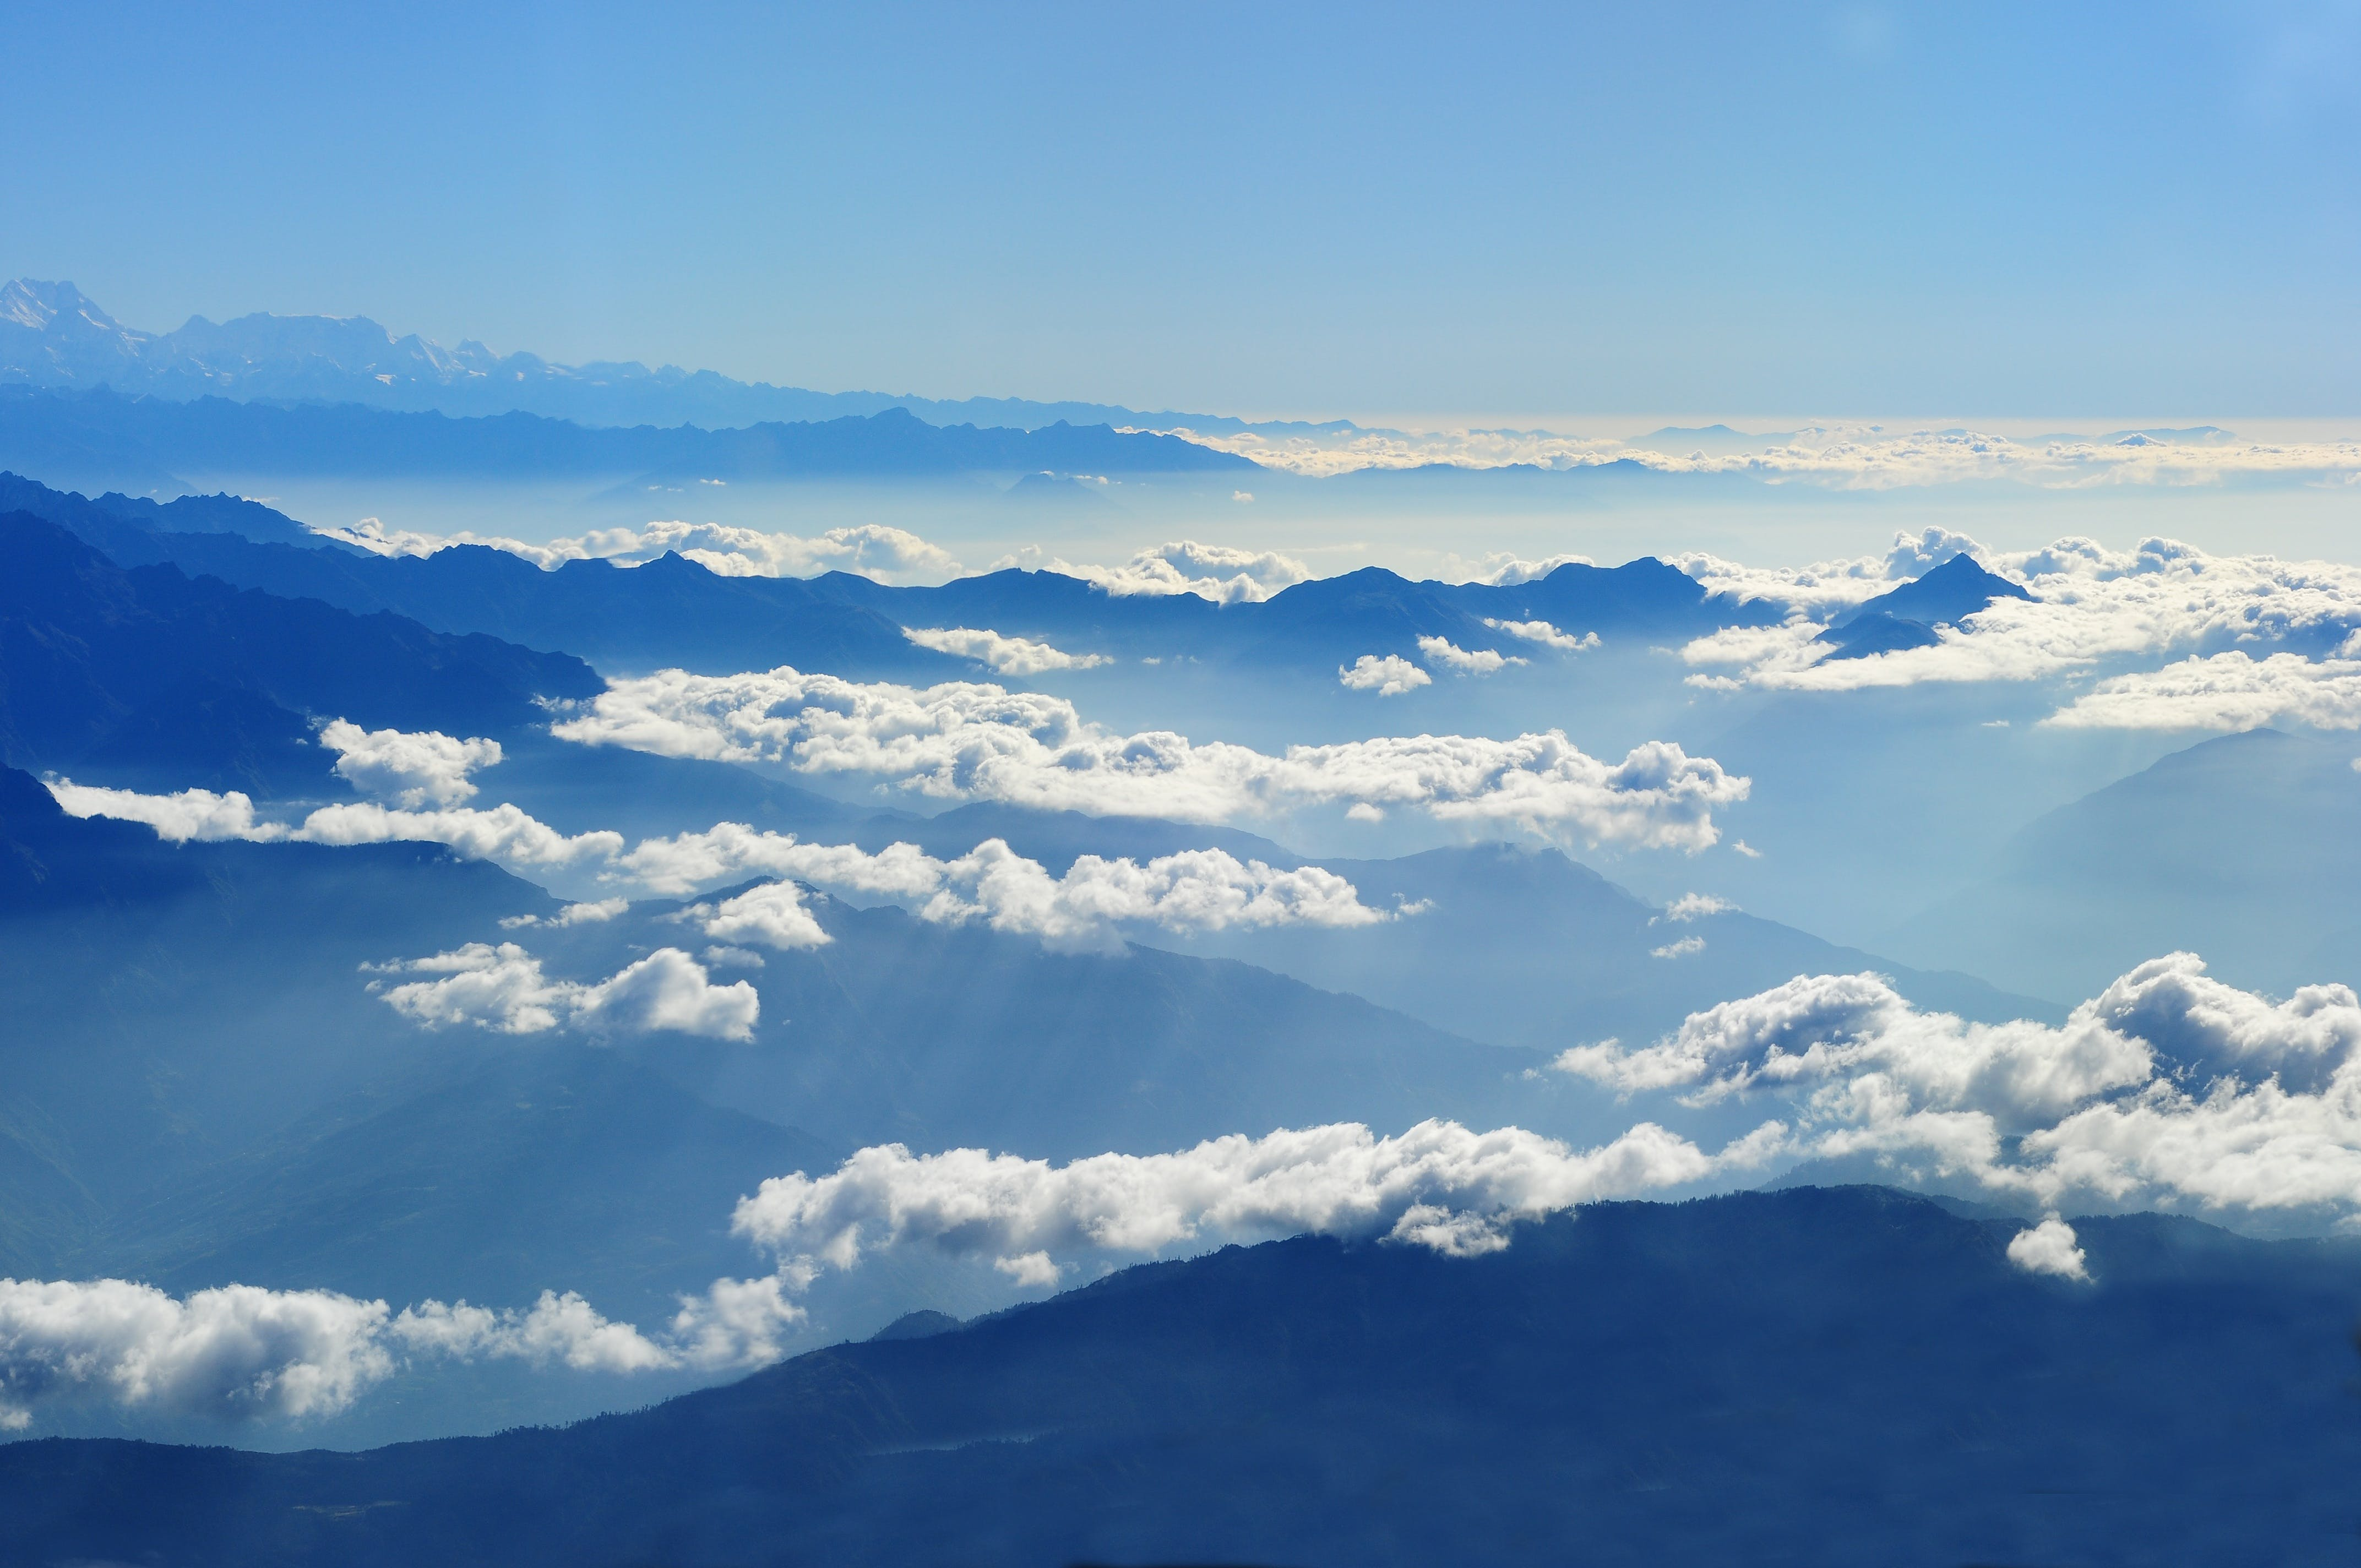 Scenic View of Clouds over Mountains Against Blue Sky